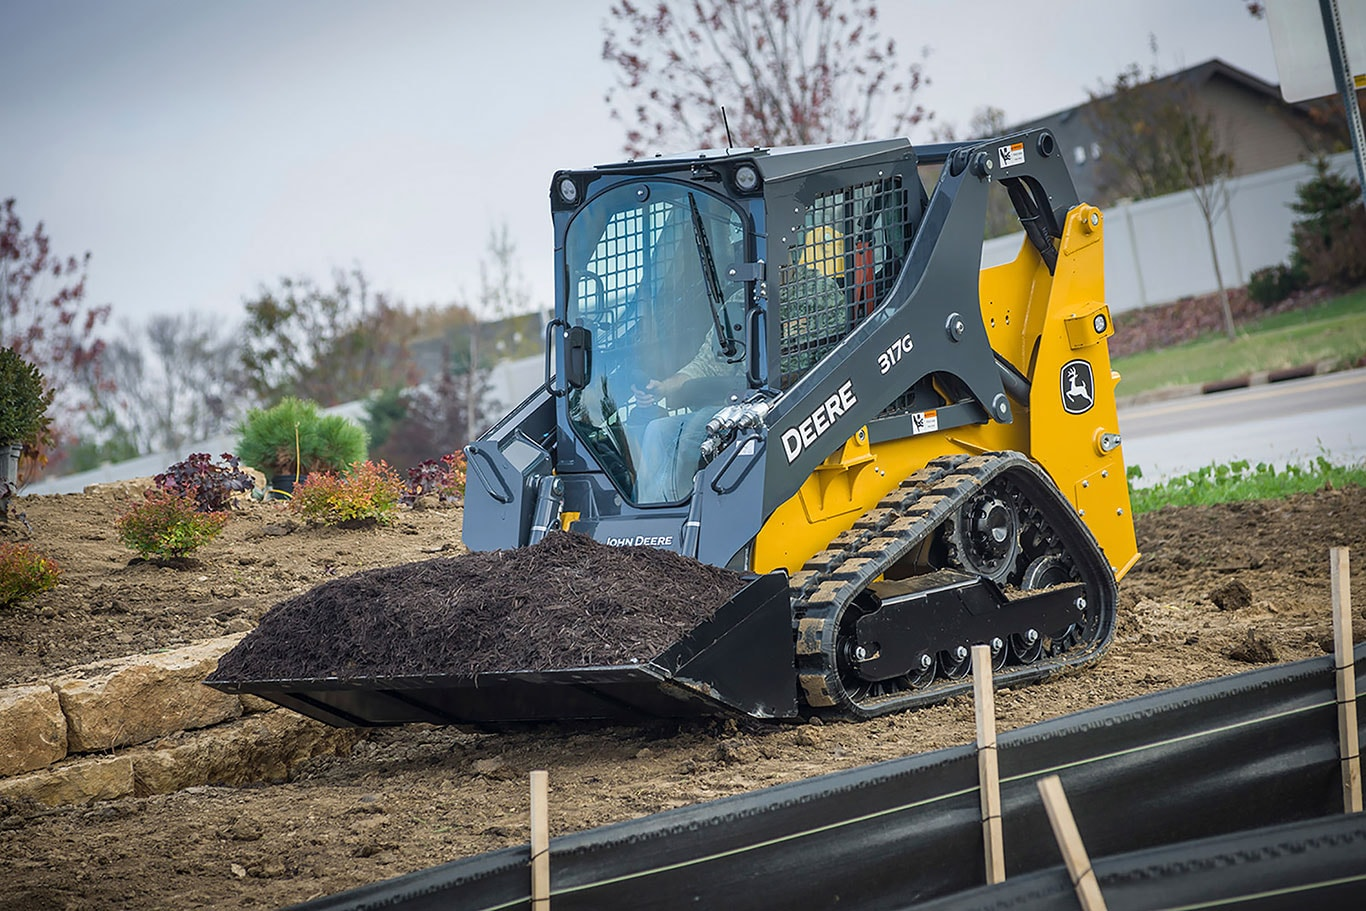 John Deere compact track loader hauling a bucketful of dirt at a jobsite